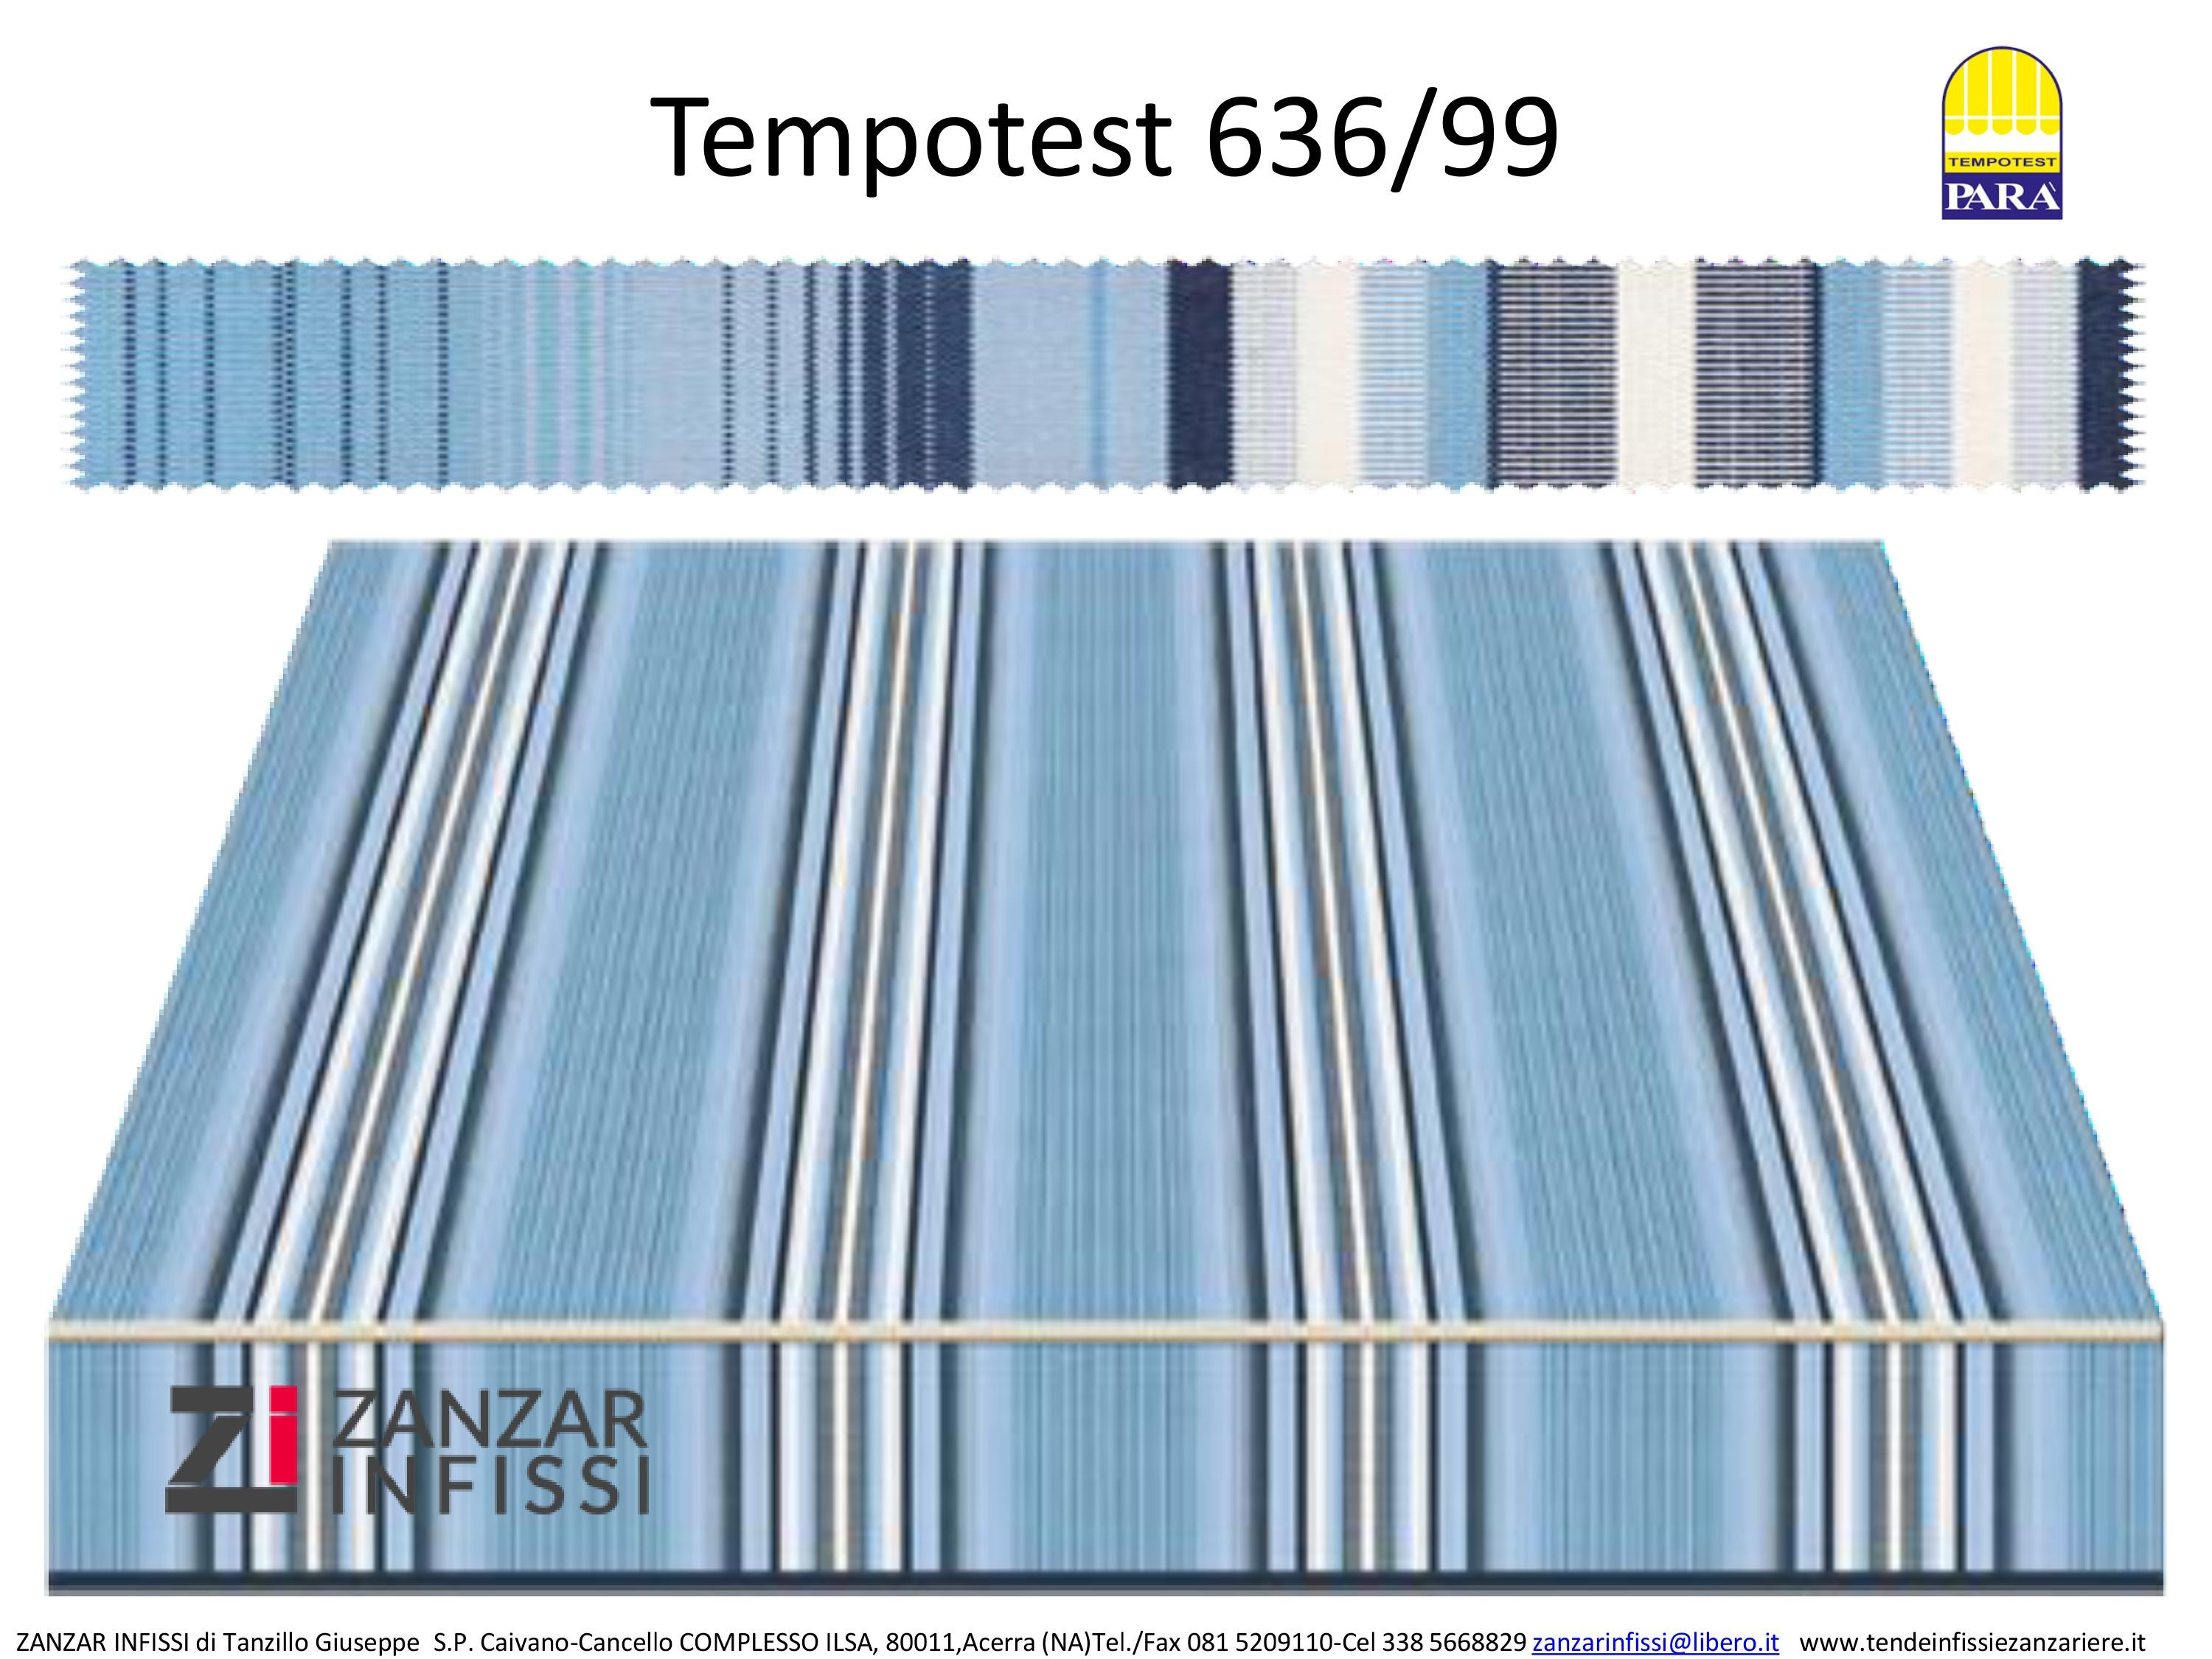 Tempotest 636/99